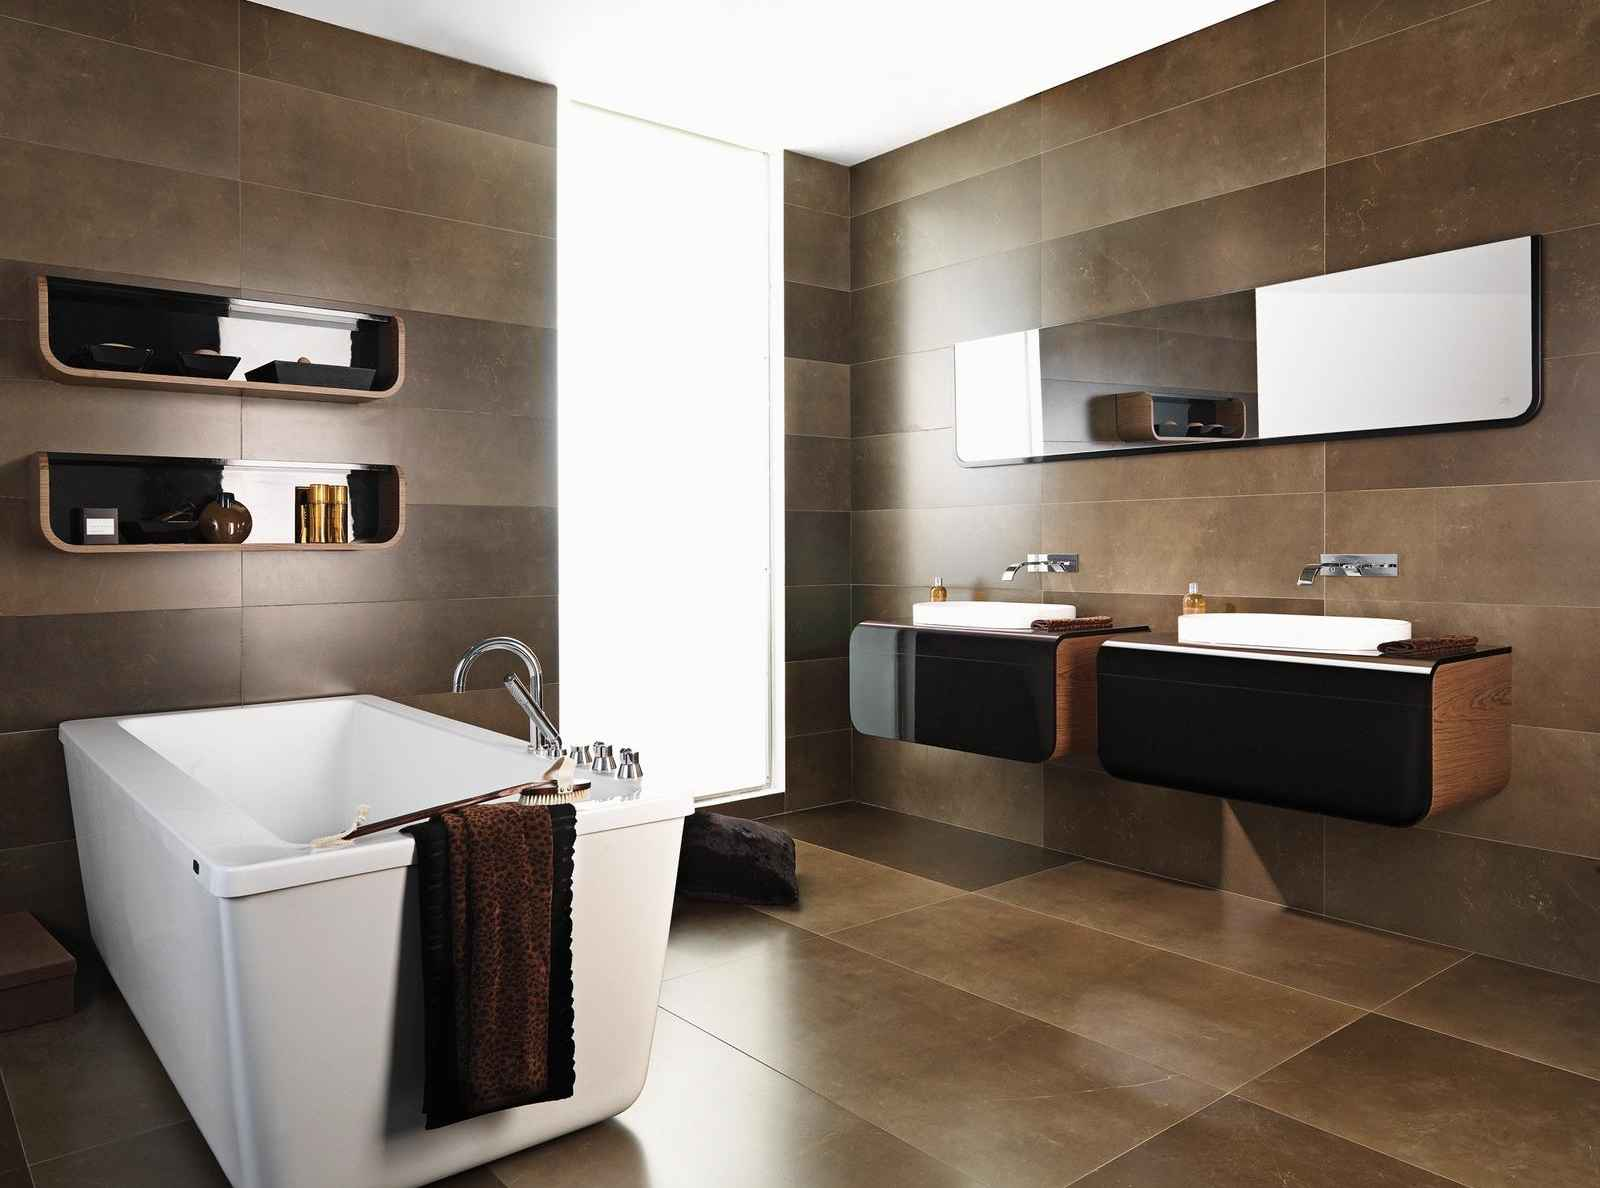 27 wonderful pictures and ideas of italian bathroom wall tiles 22885